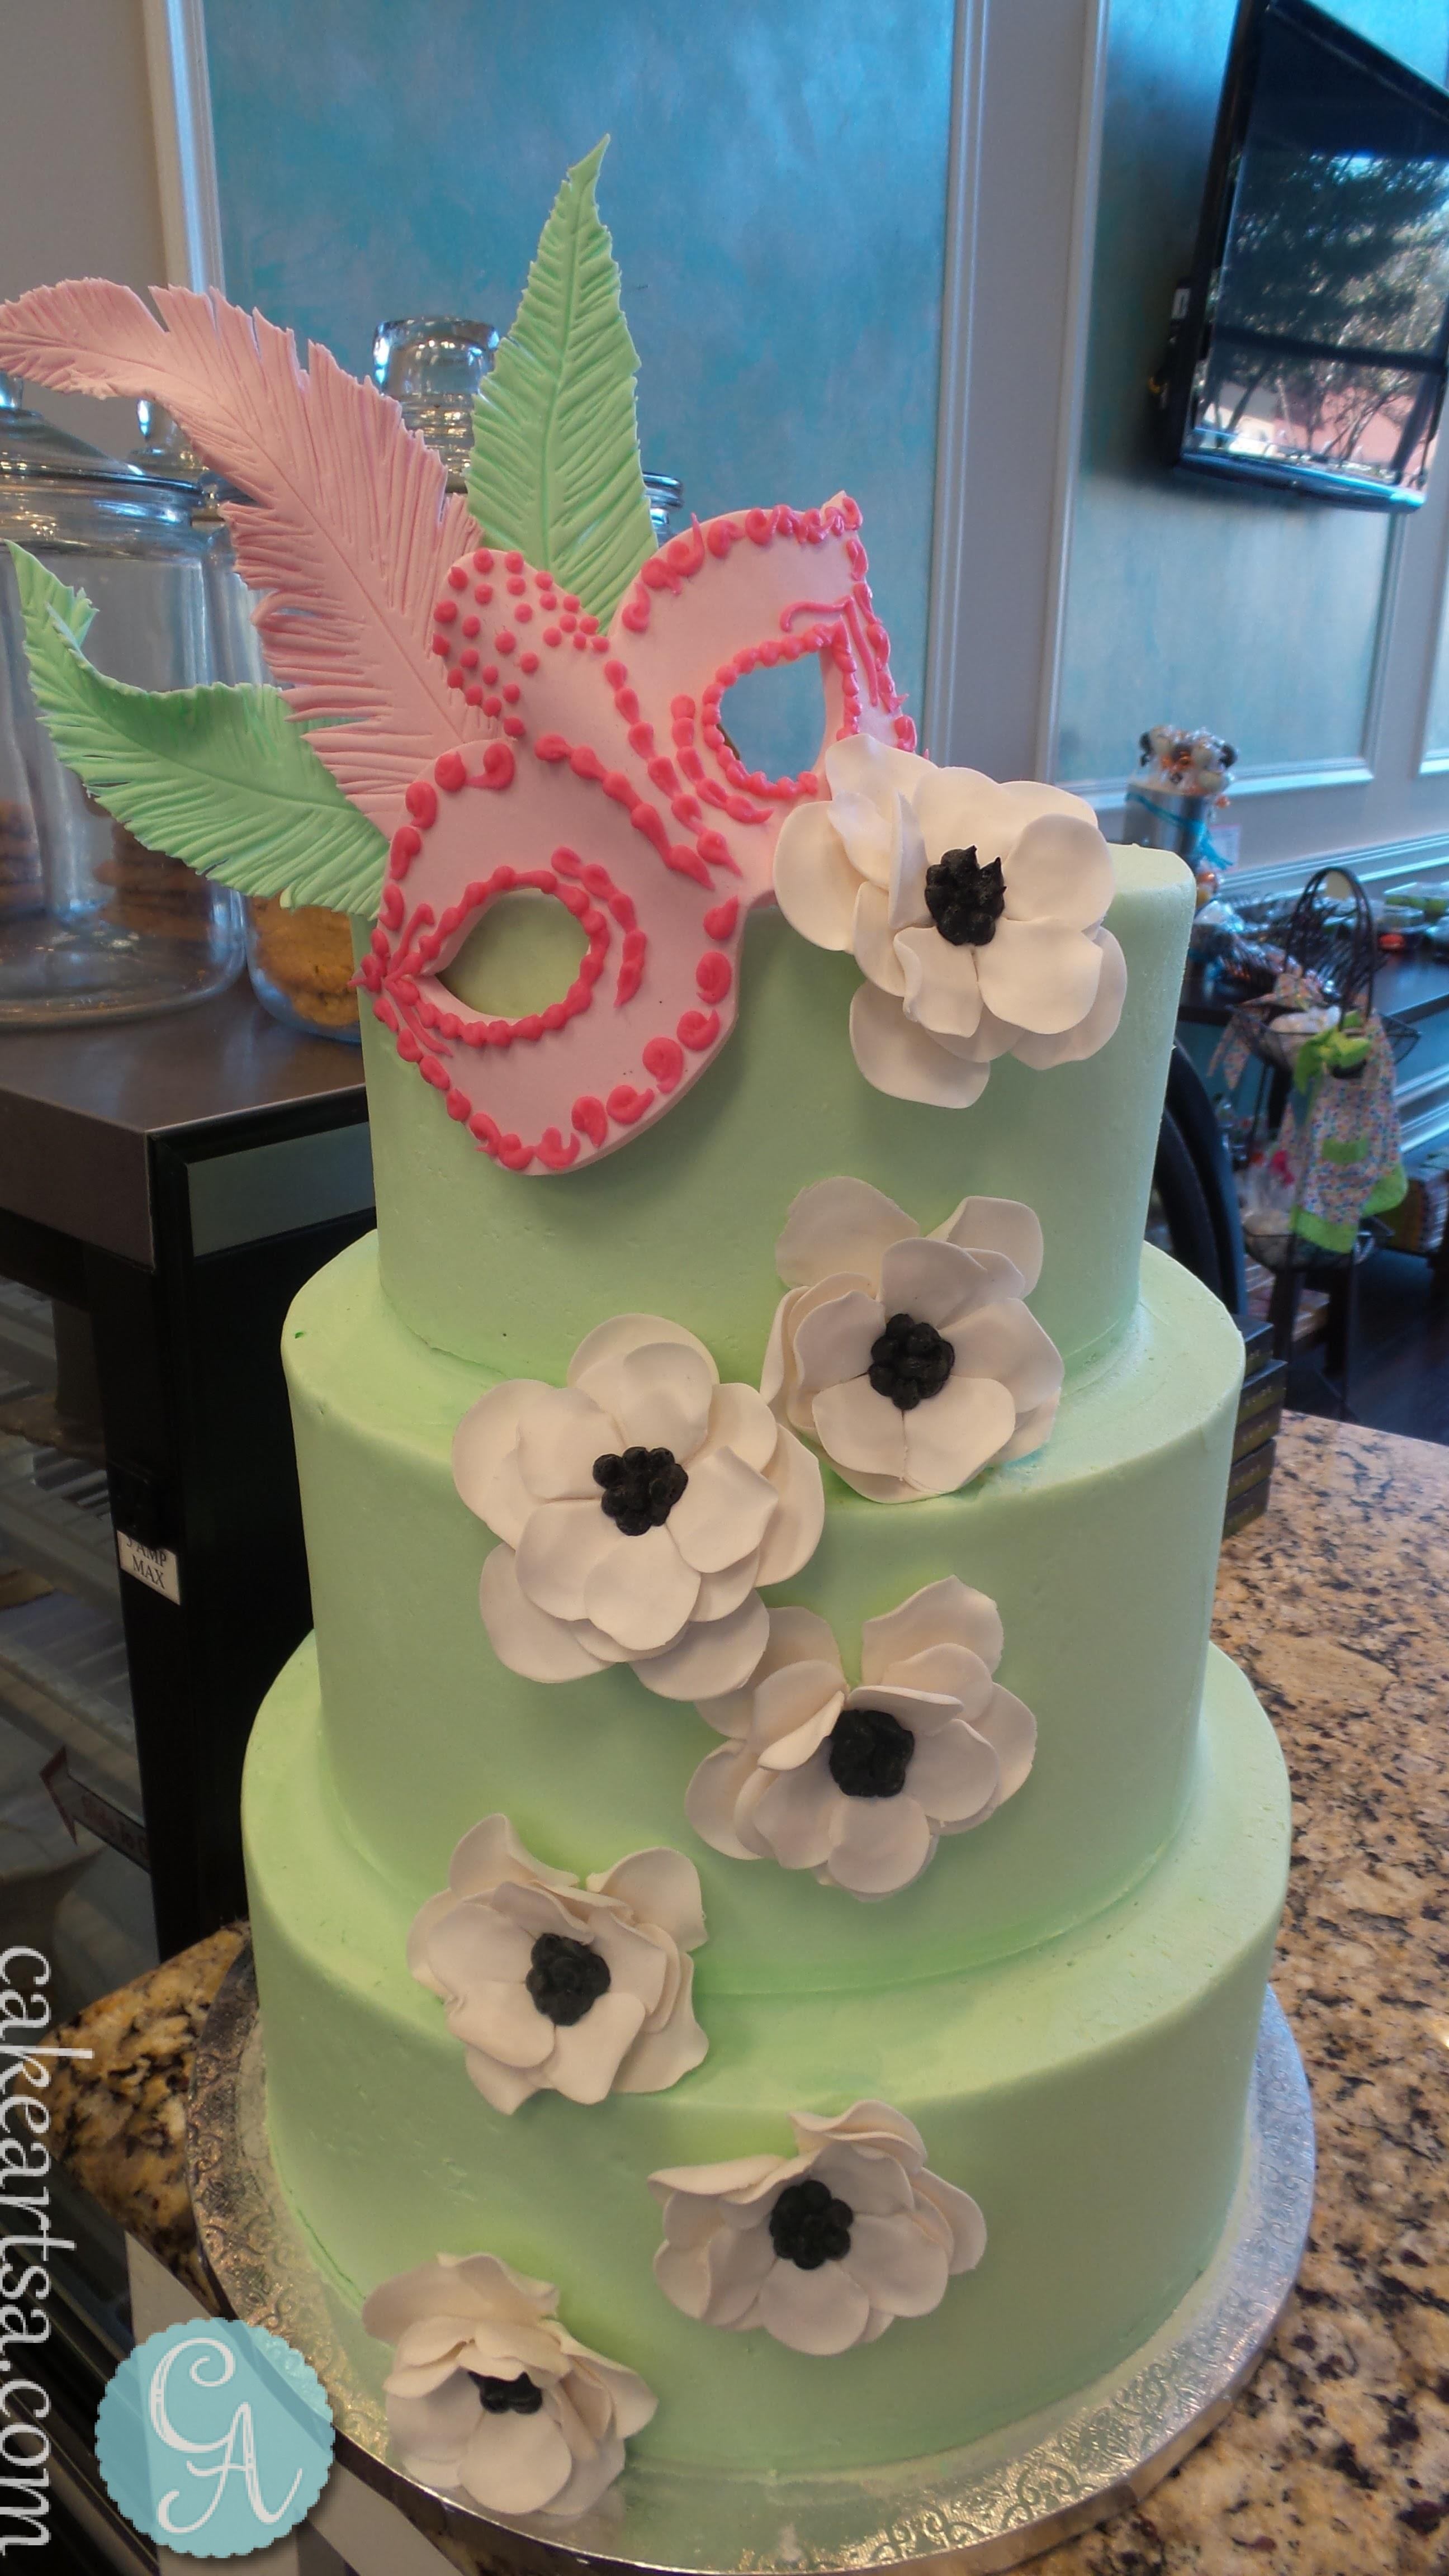 cupcake wedding cakes pictures birthday archives page 4 of 55 cakeartsa 13184